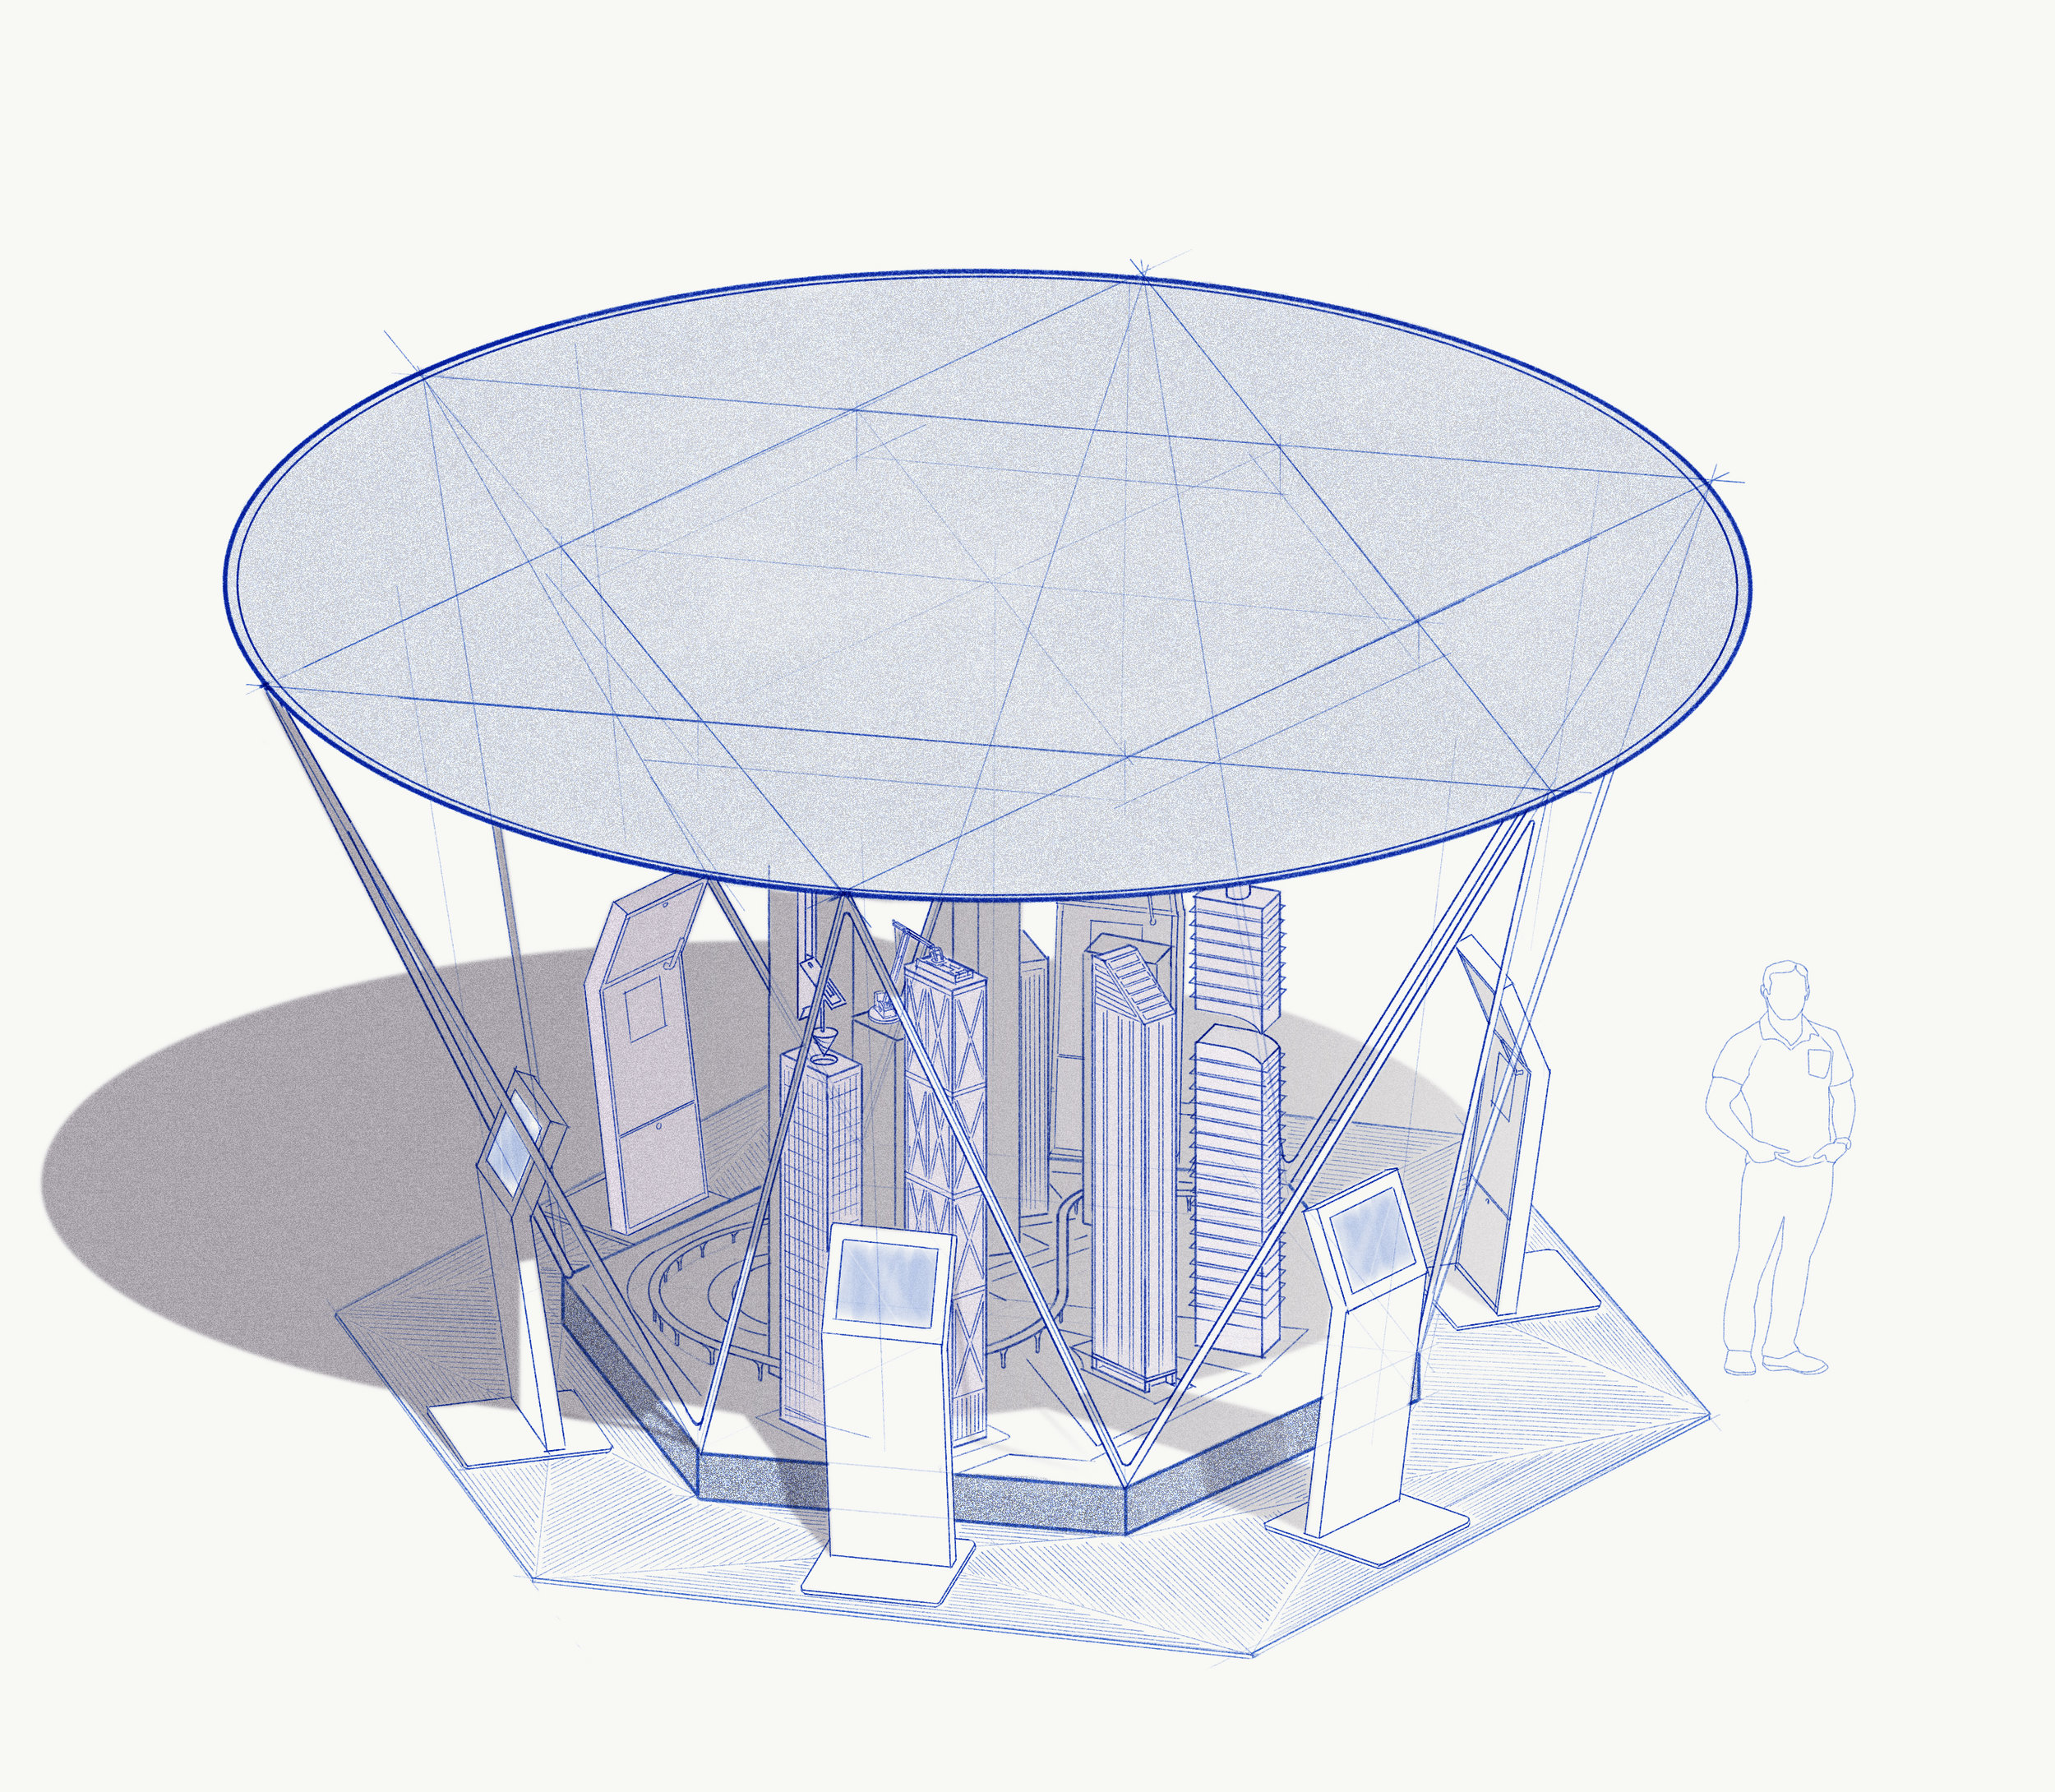 Concept design  for experiential proposal.